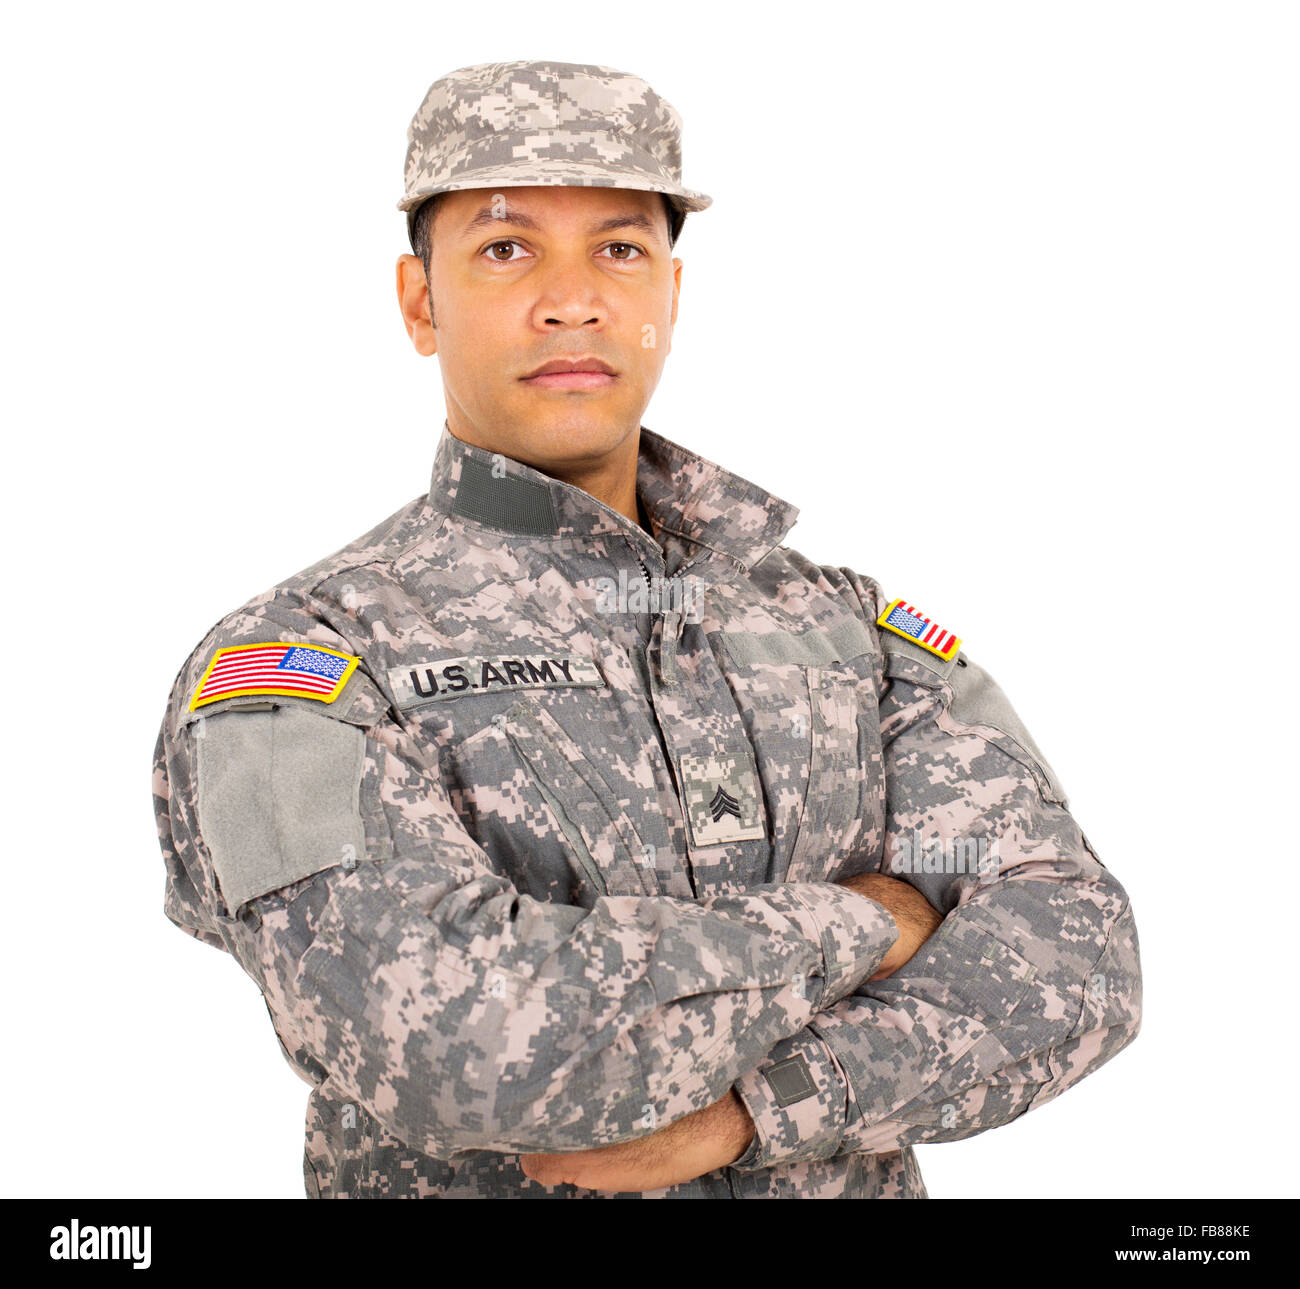 portrait of American military soldier with arms crossed - Stock Image